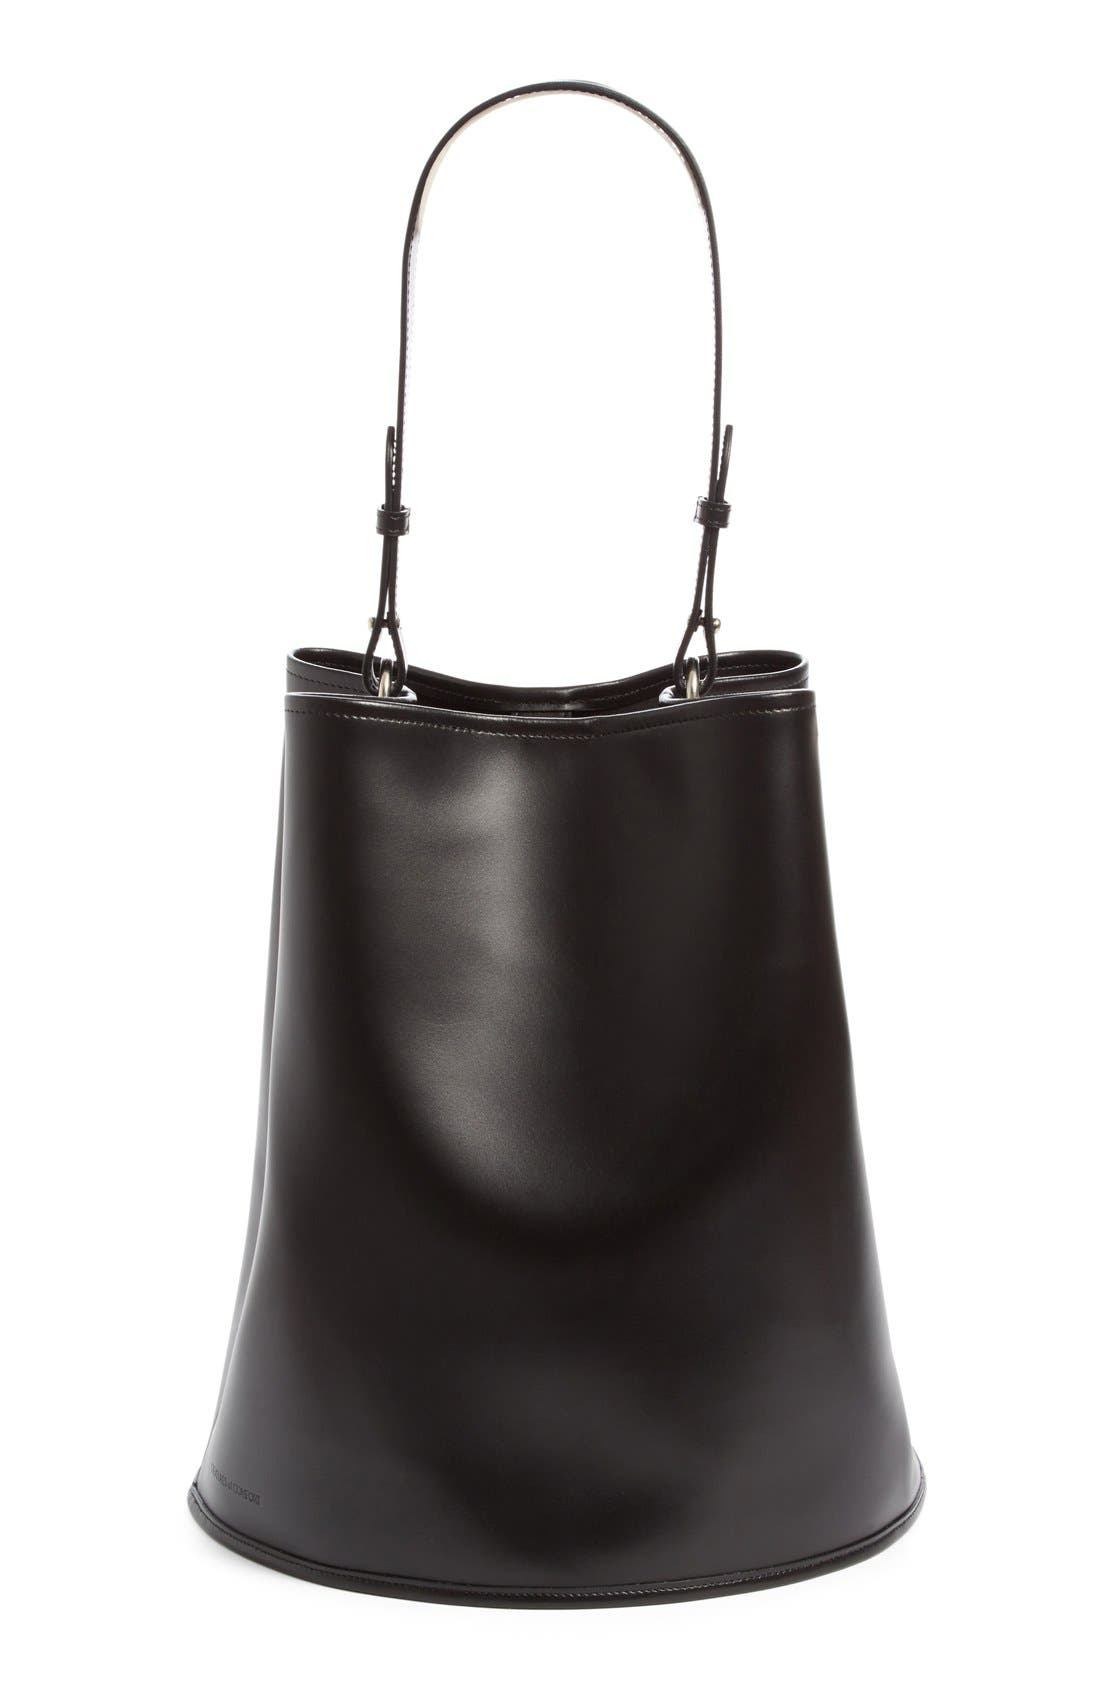 Main Image - Creatures of Comfort Large Calfskin Leather Bucket Bag